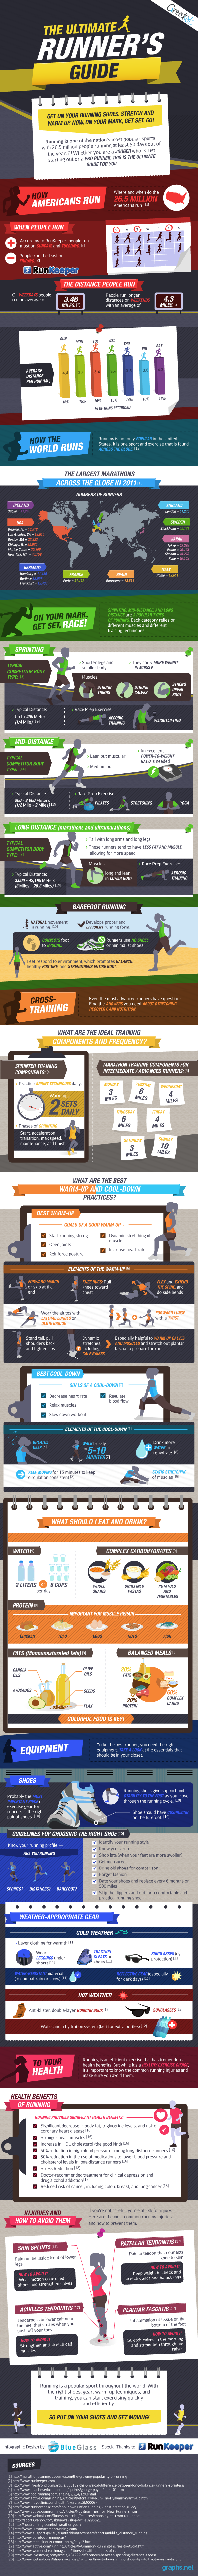 facts about runners guide